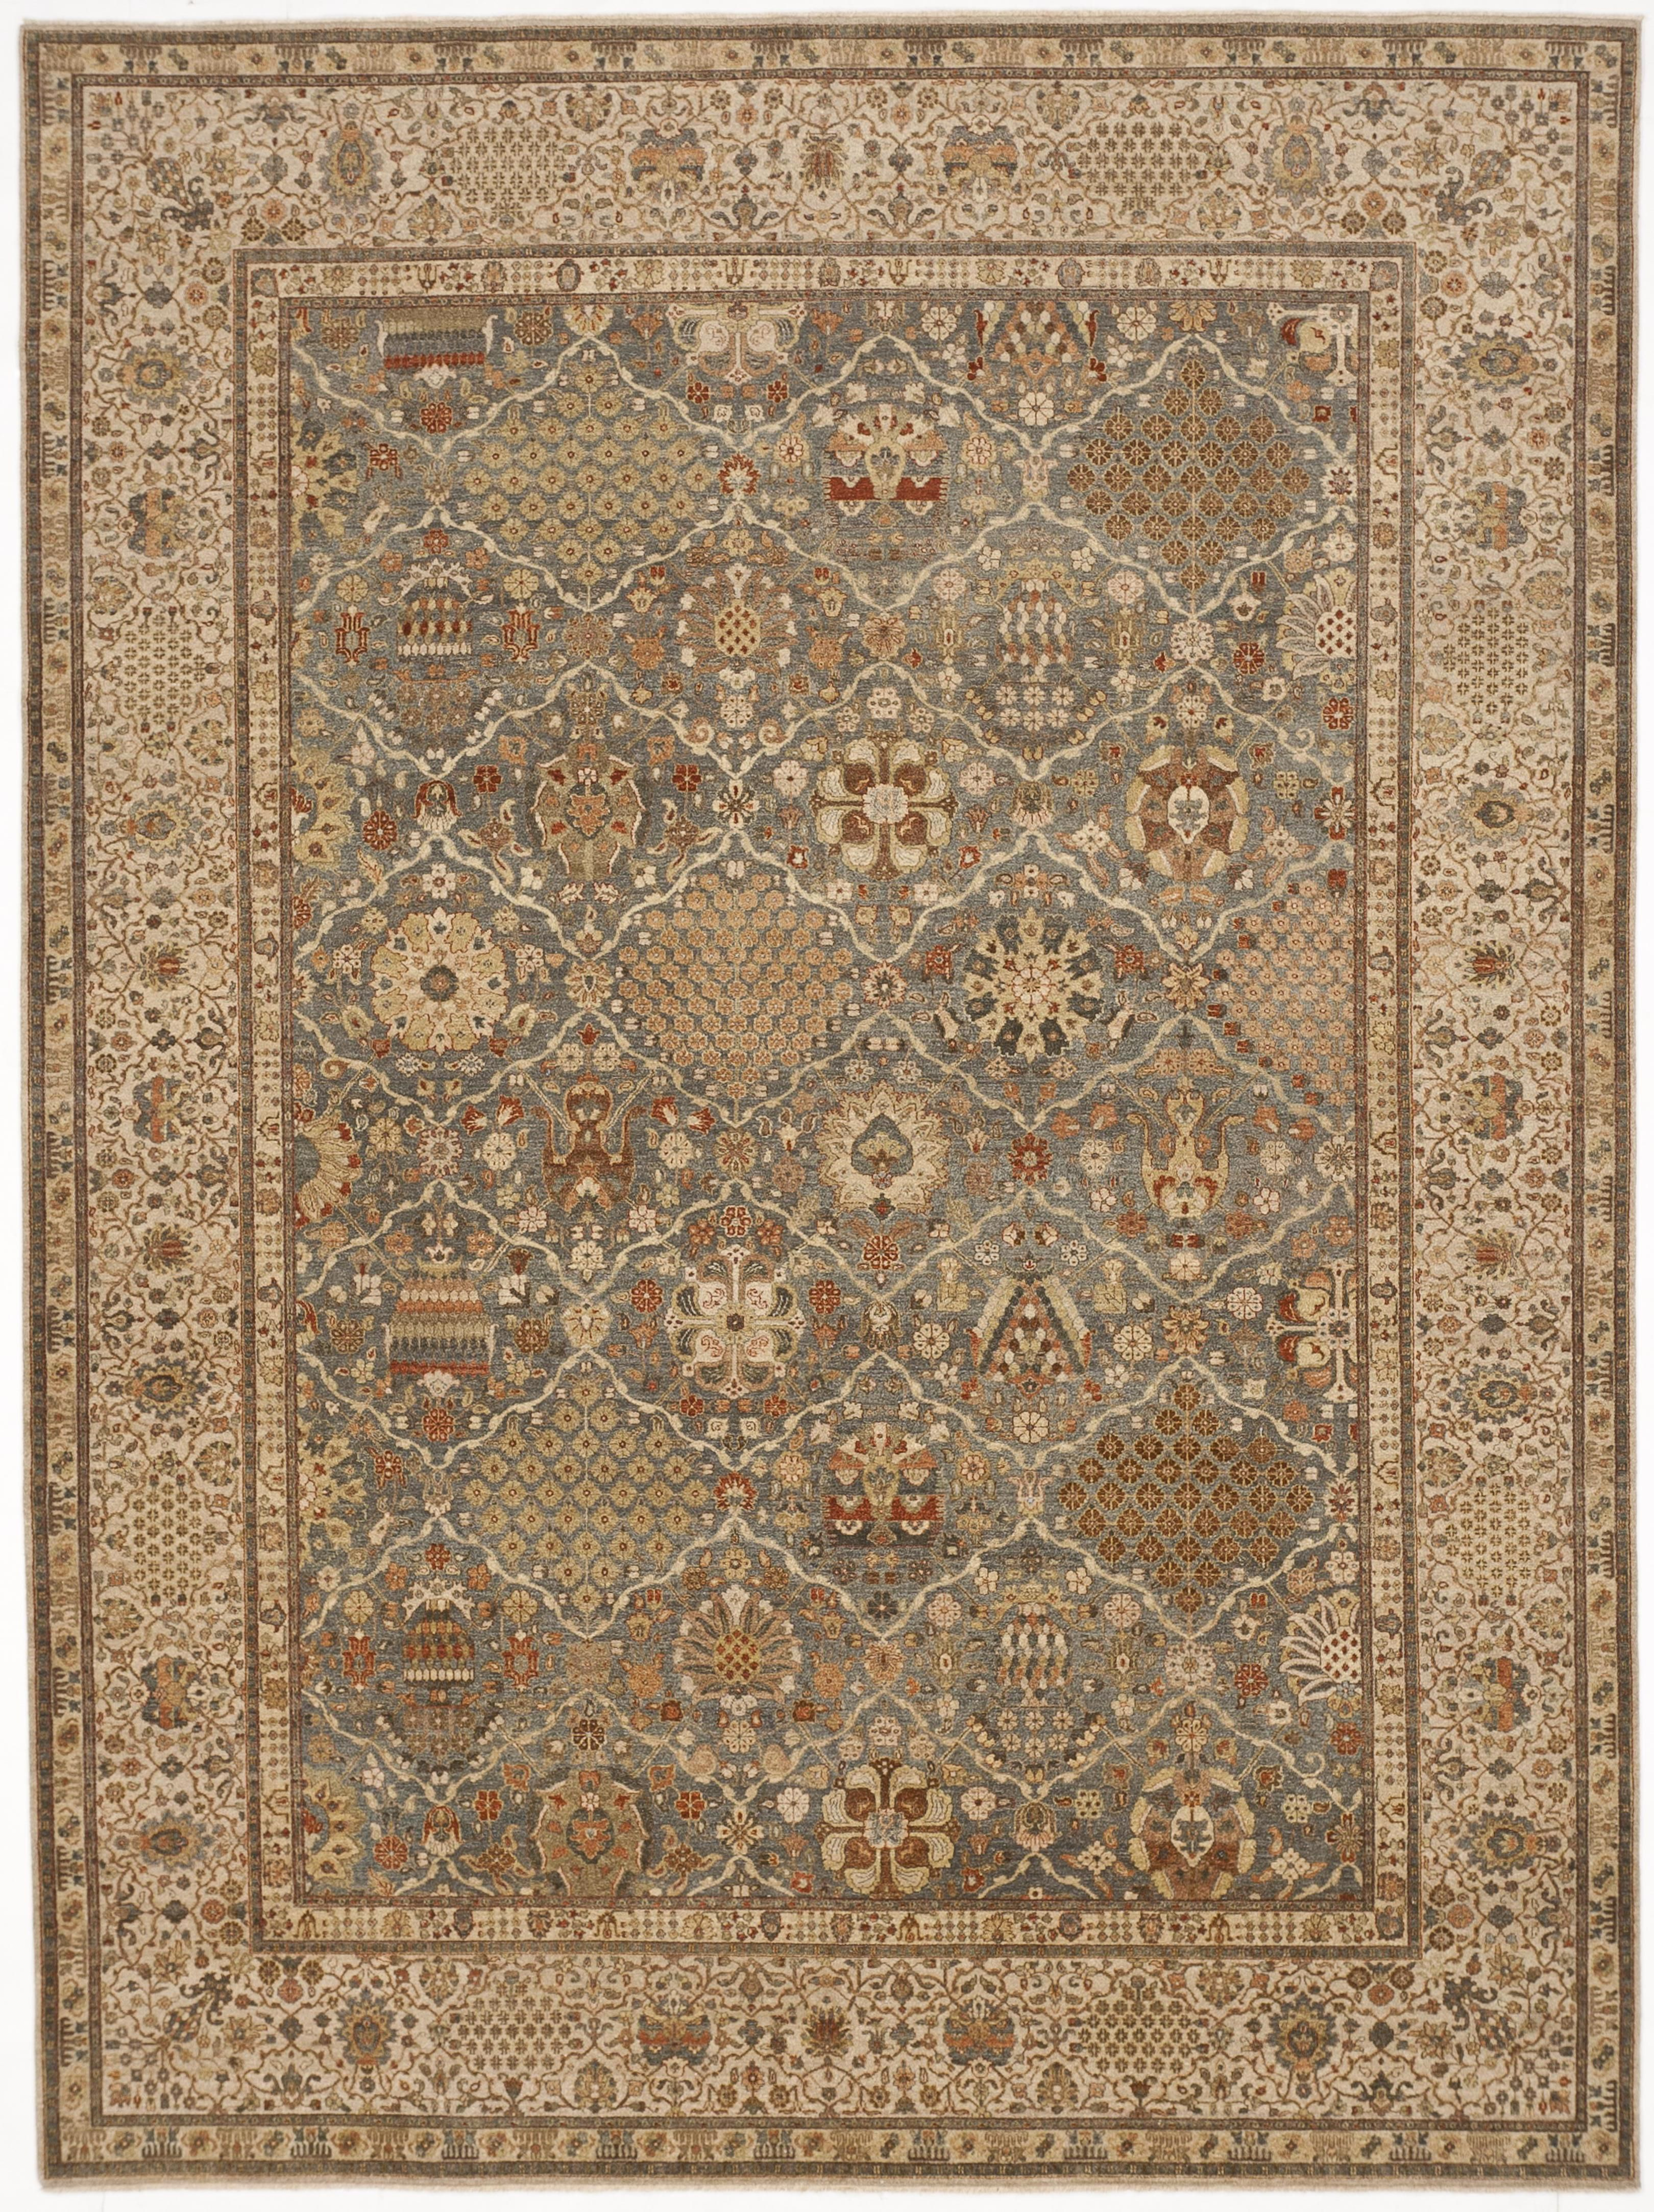 Handmade Indian Rug 8 10 X 11 10 Indian Rugs Distressed